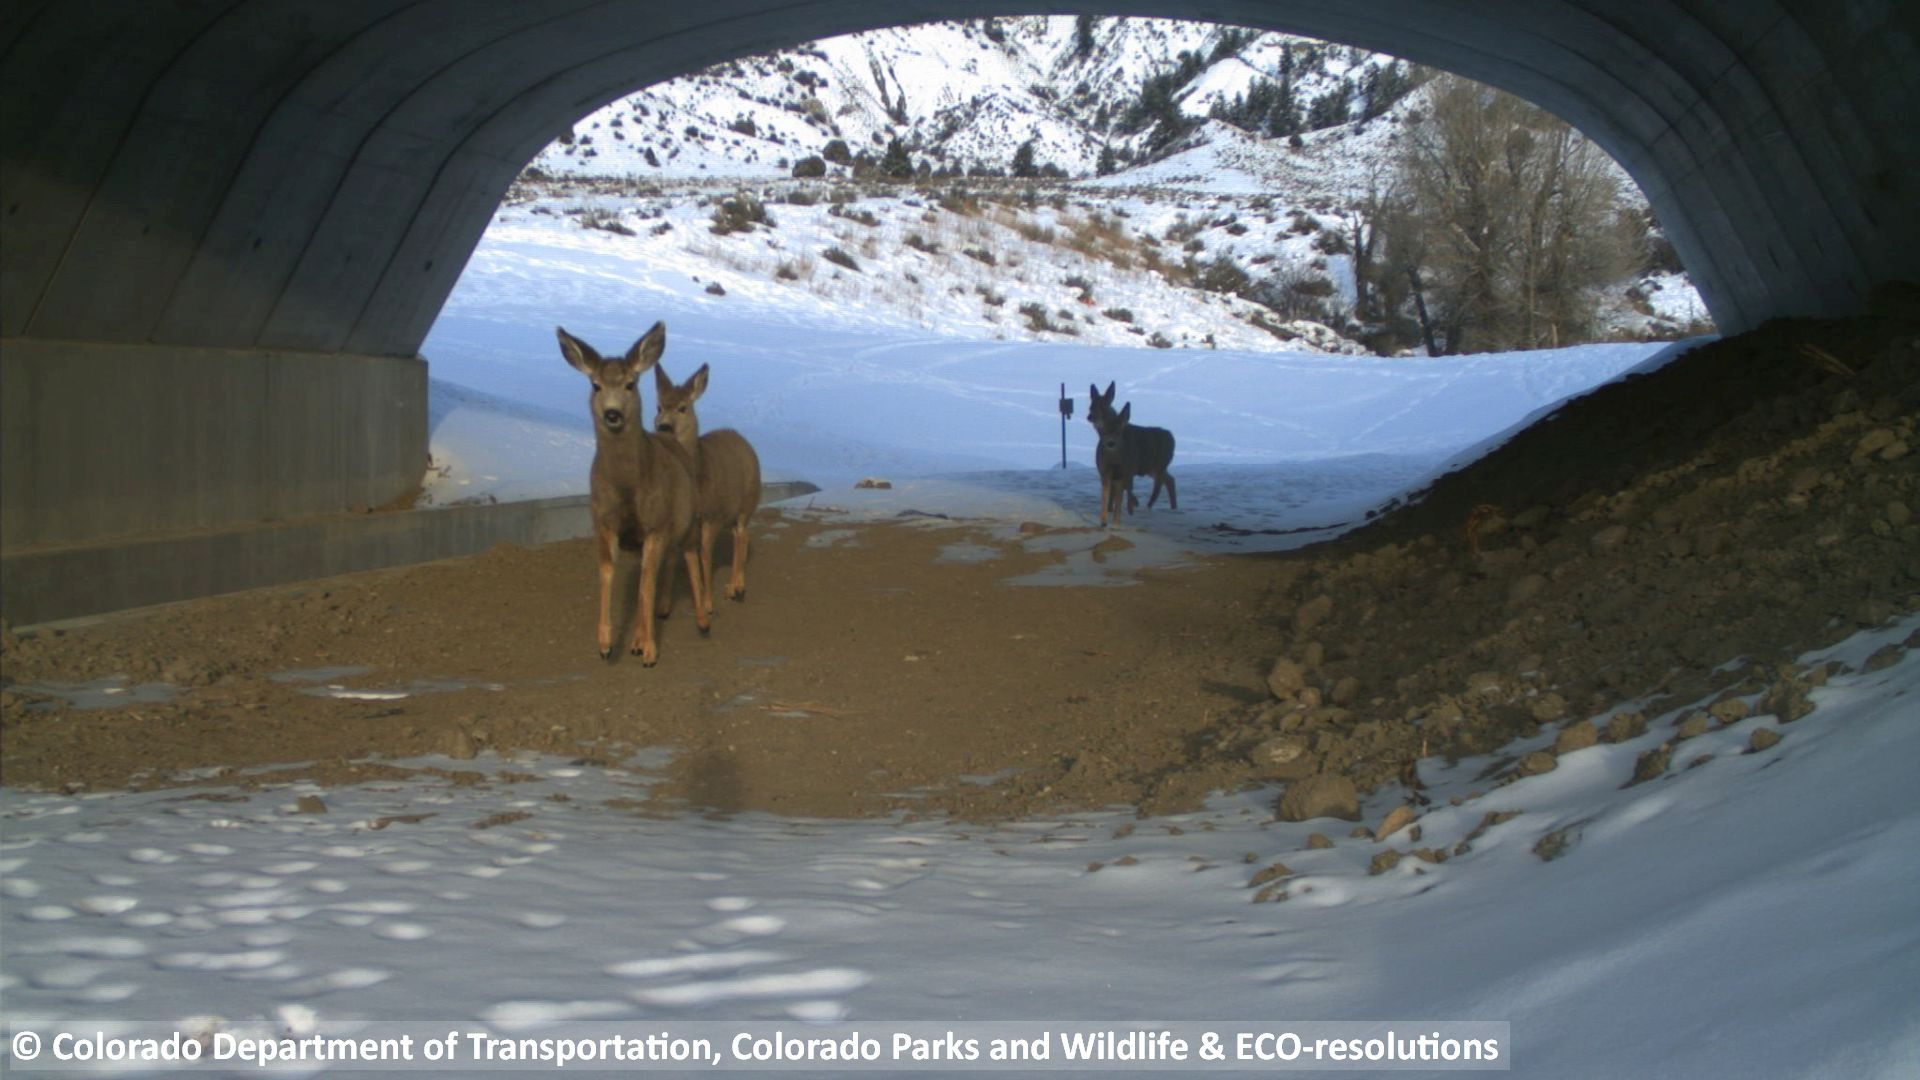 Deer walk under State Highway 9, one of five wildlife underpasses built by the Colorado Department of Transportation along the road between Kremmling and Silverthorne.